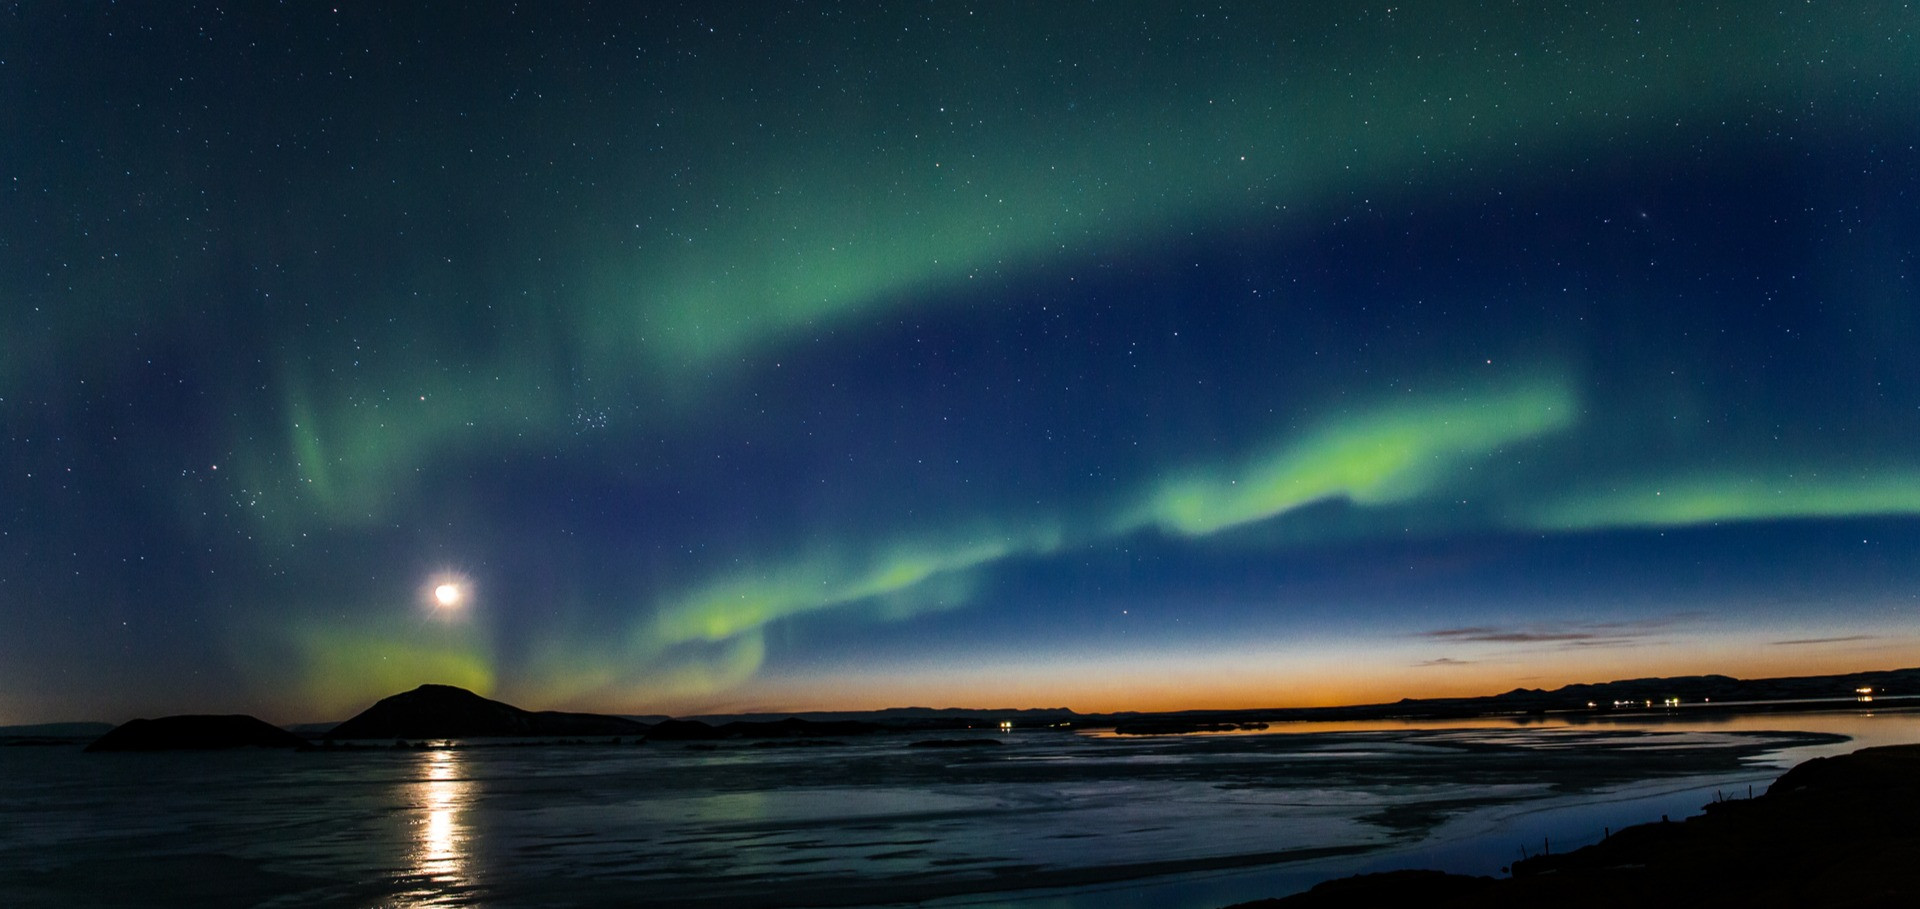 NORTHERN LIGHTS OVER MÝVATN